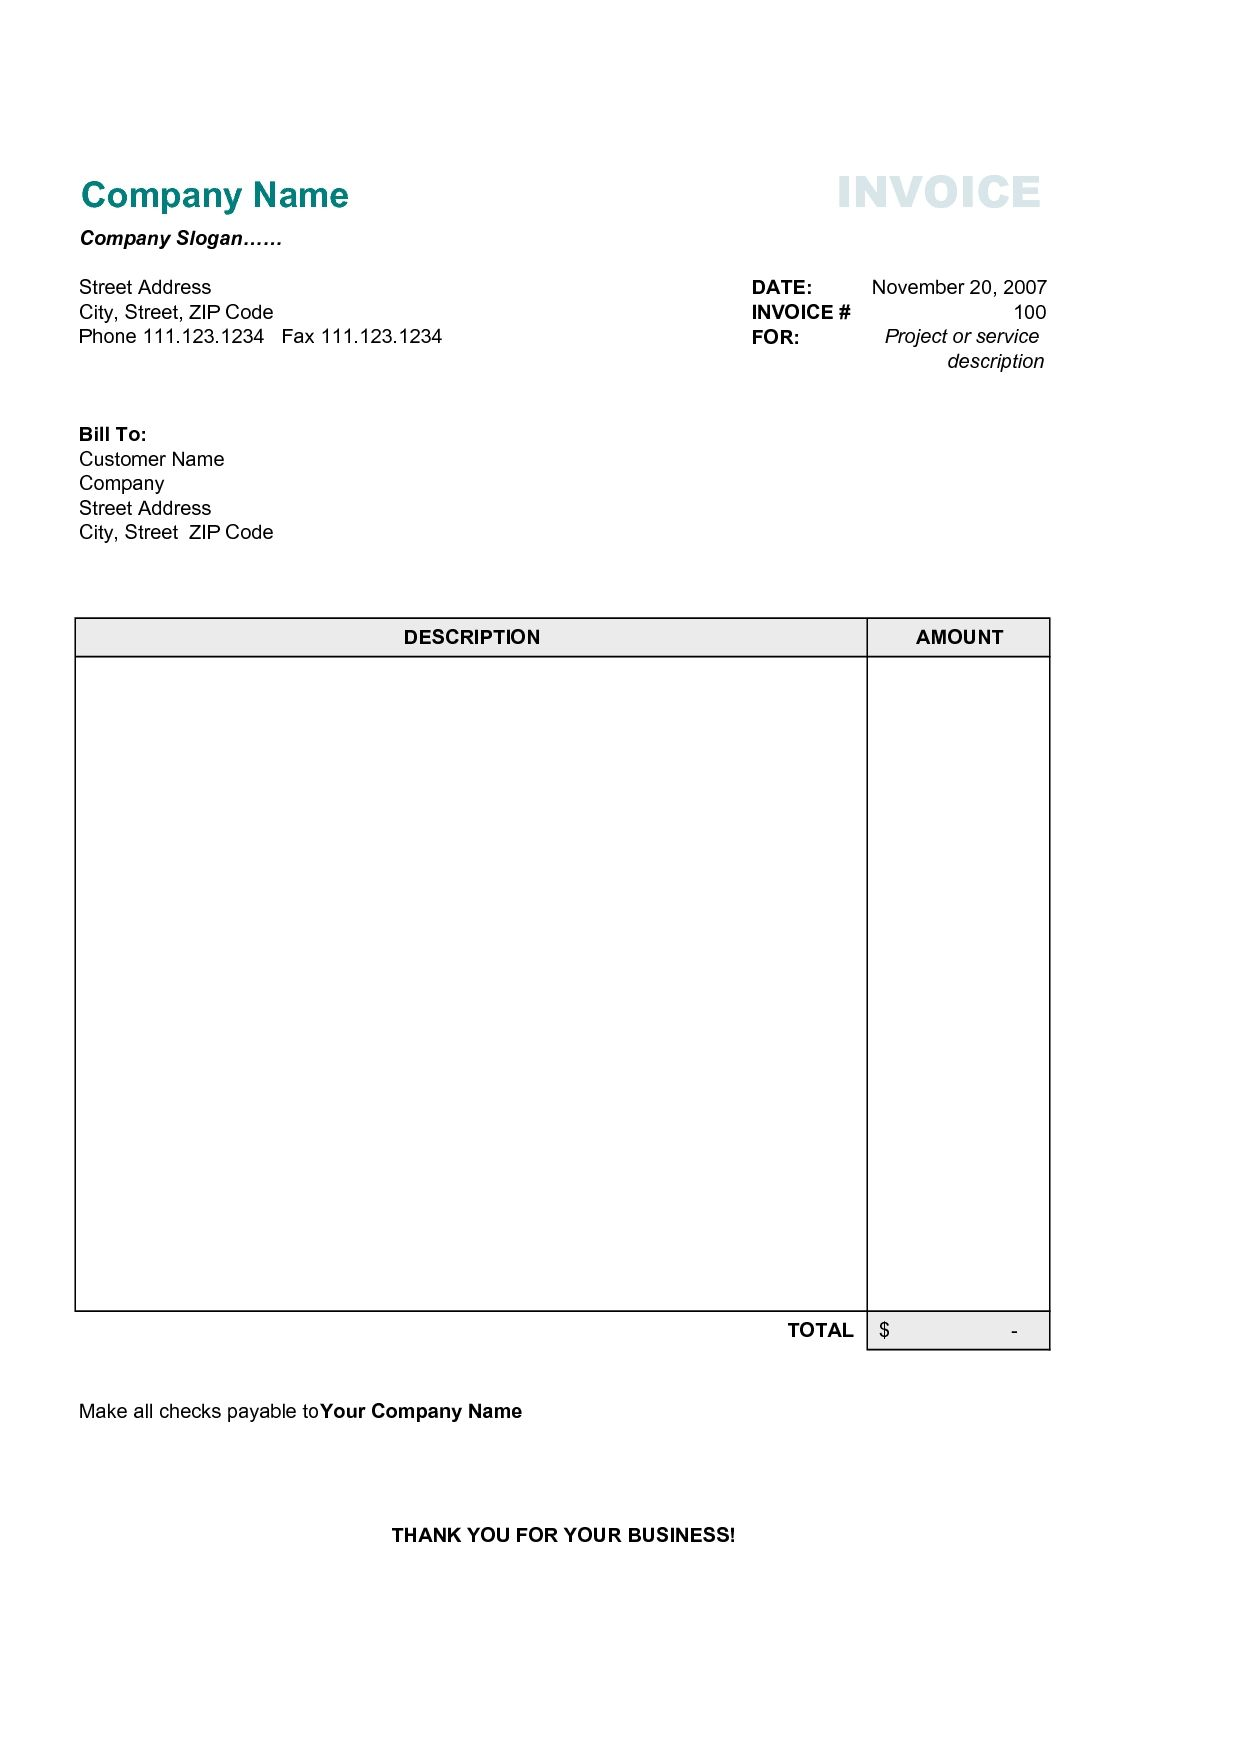 Free Business Invoice Template Best Business Template Free Invoice - Free invoice images for service business